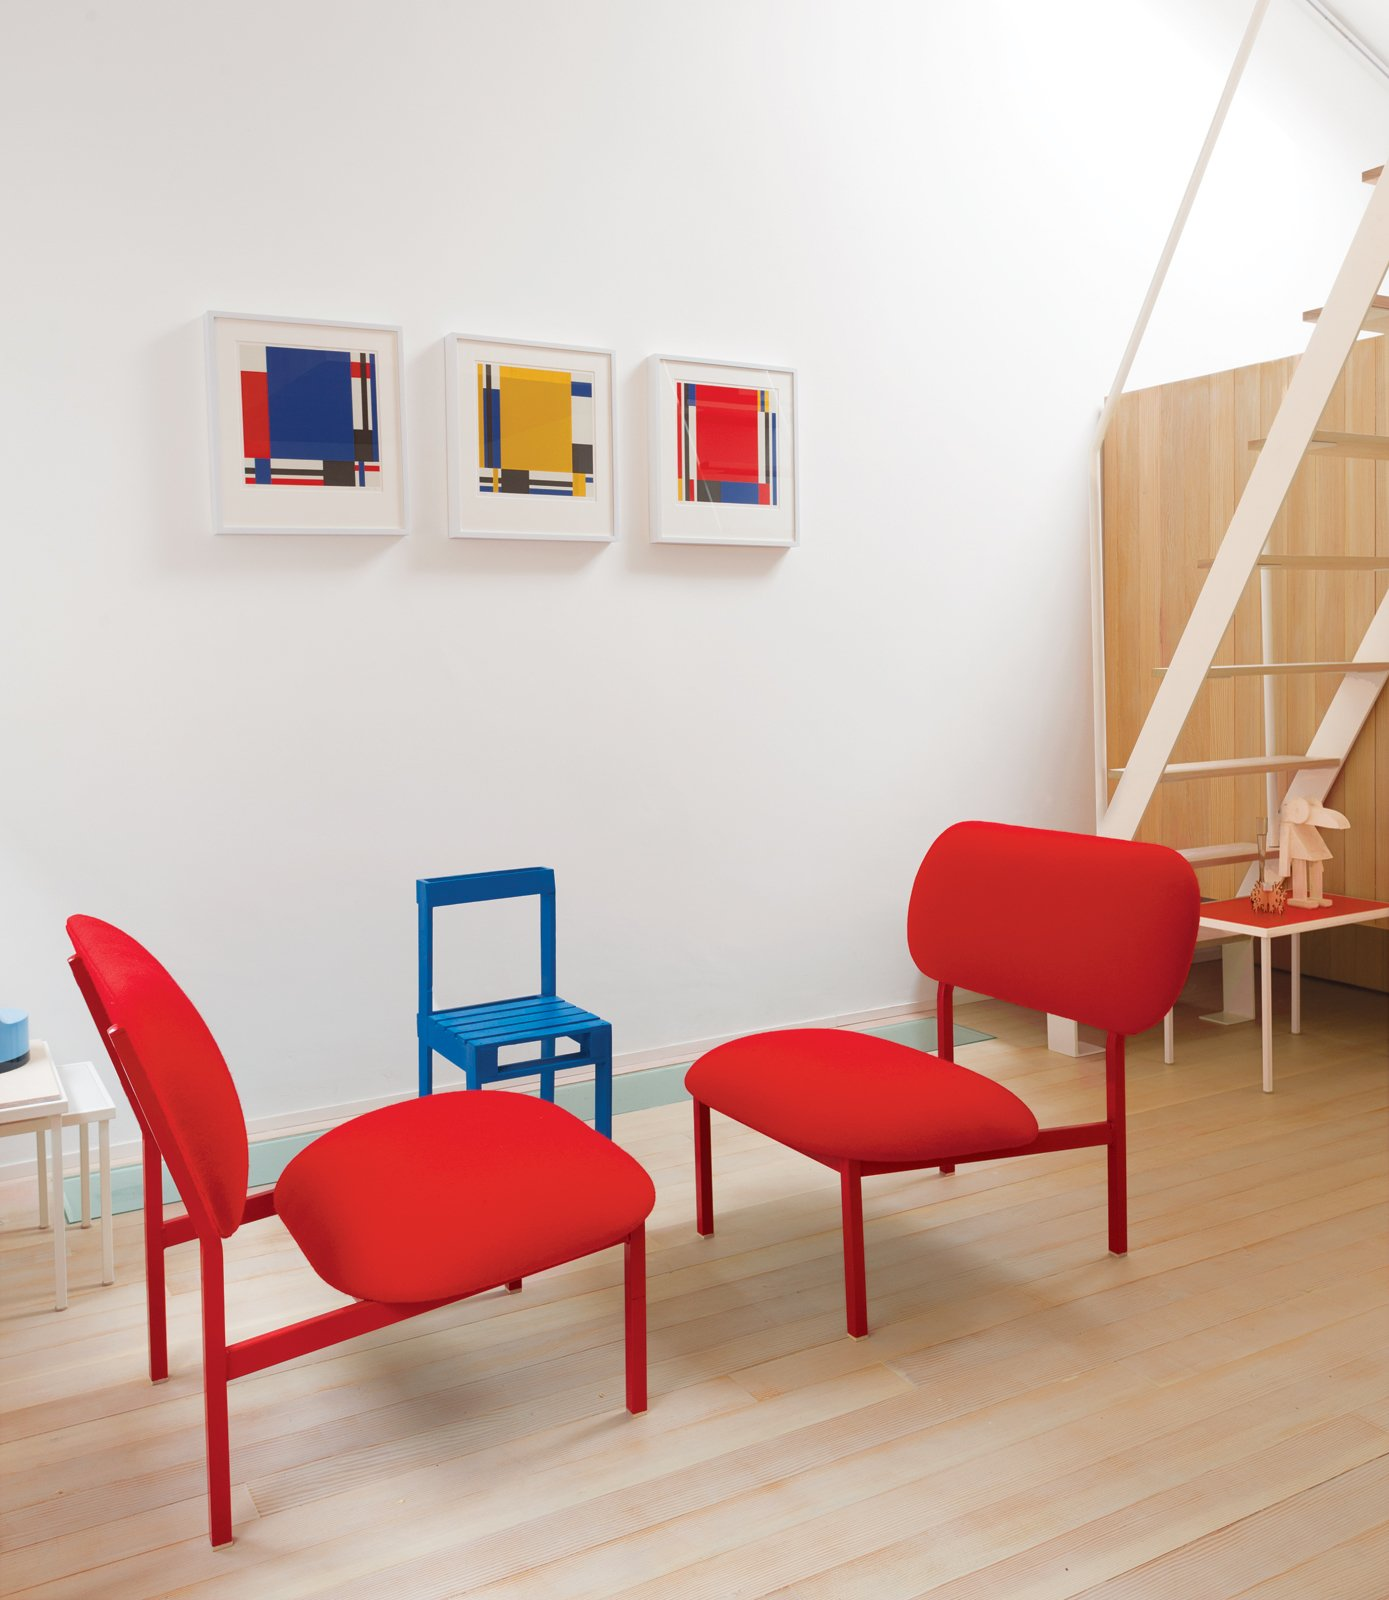 Just outside the Bethnal Green home of industrial designer Nina Tolstrup and her husband, Jack Mama, is this wonderfully vibrant guesthouse they designed with  red chairs made from castoffs as part of Tolstrup's Re-Imagine series, and a small blue Pallet chair from Studiomama.